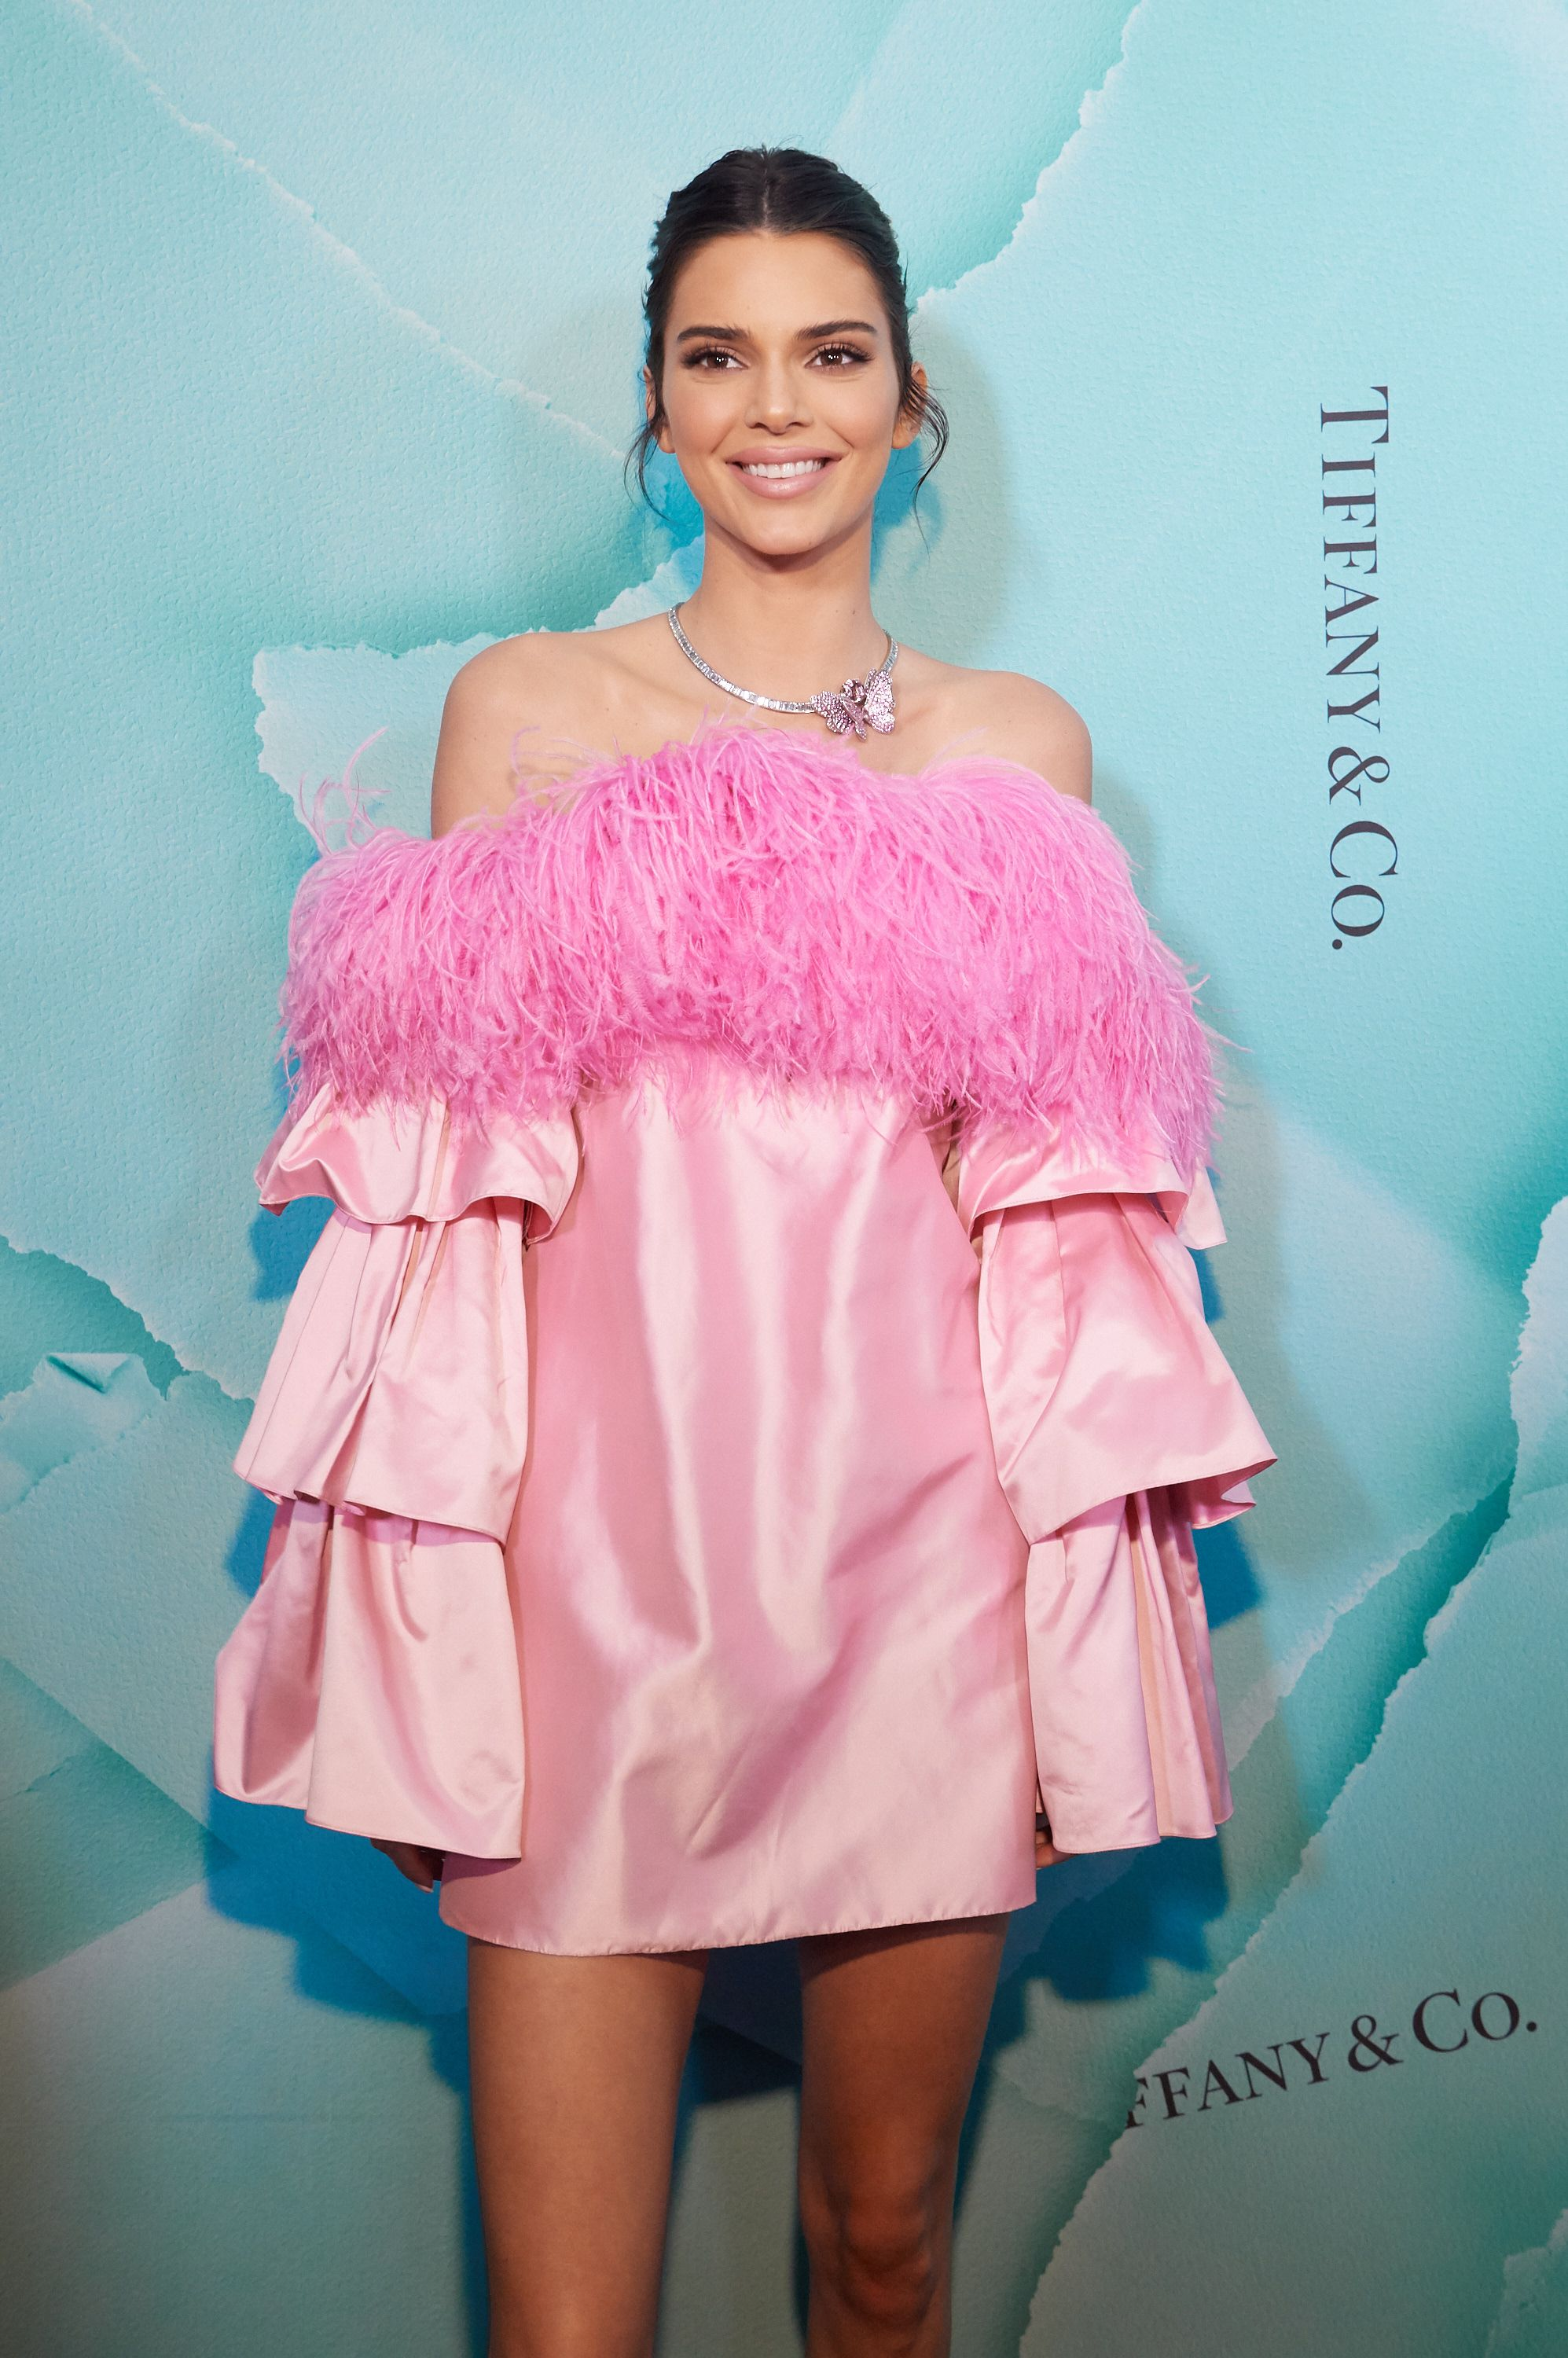 Kendall Jenner Kendall Jenner attends the opening of Tiffany & Co.'s new flagship location on April 4 in Sydney, Australia.